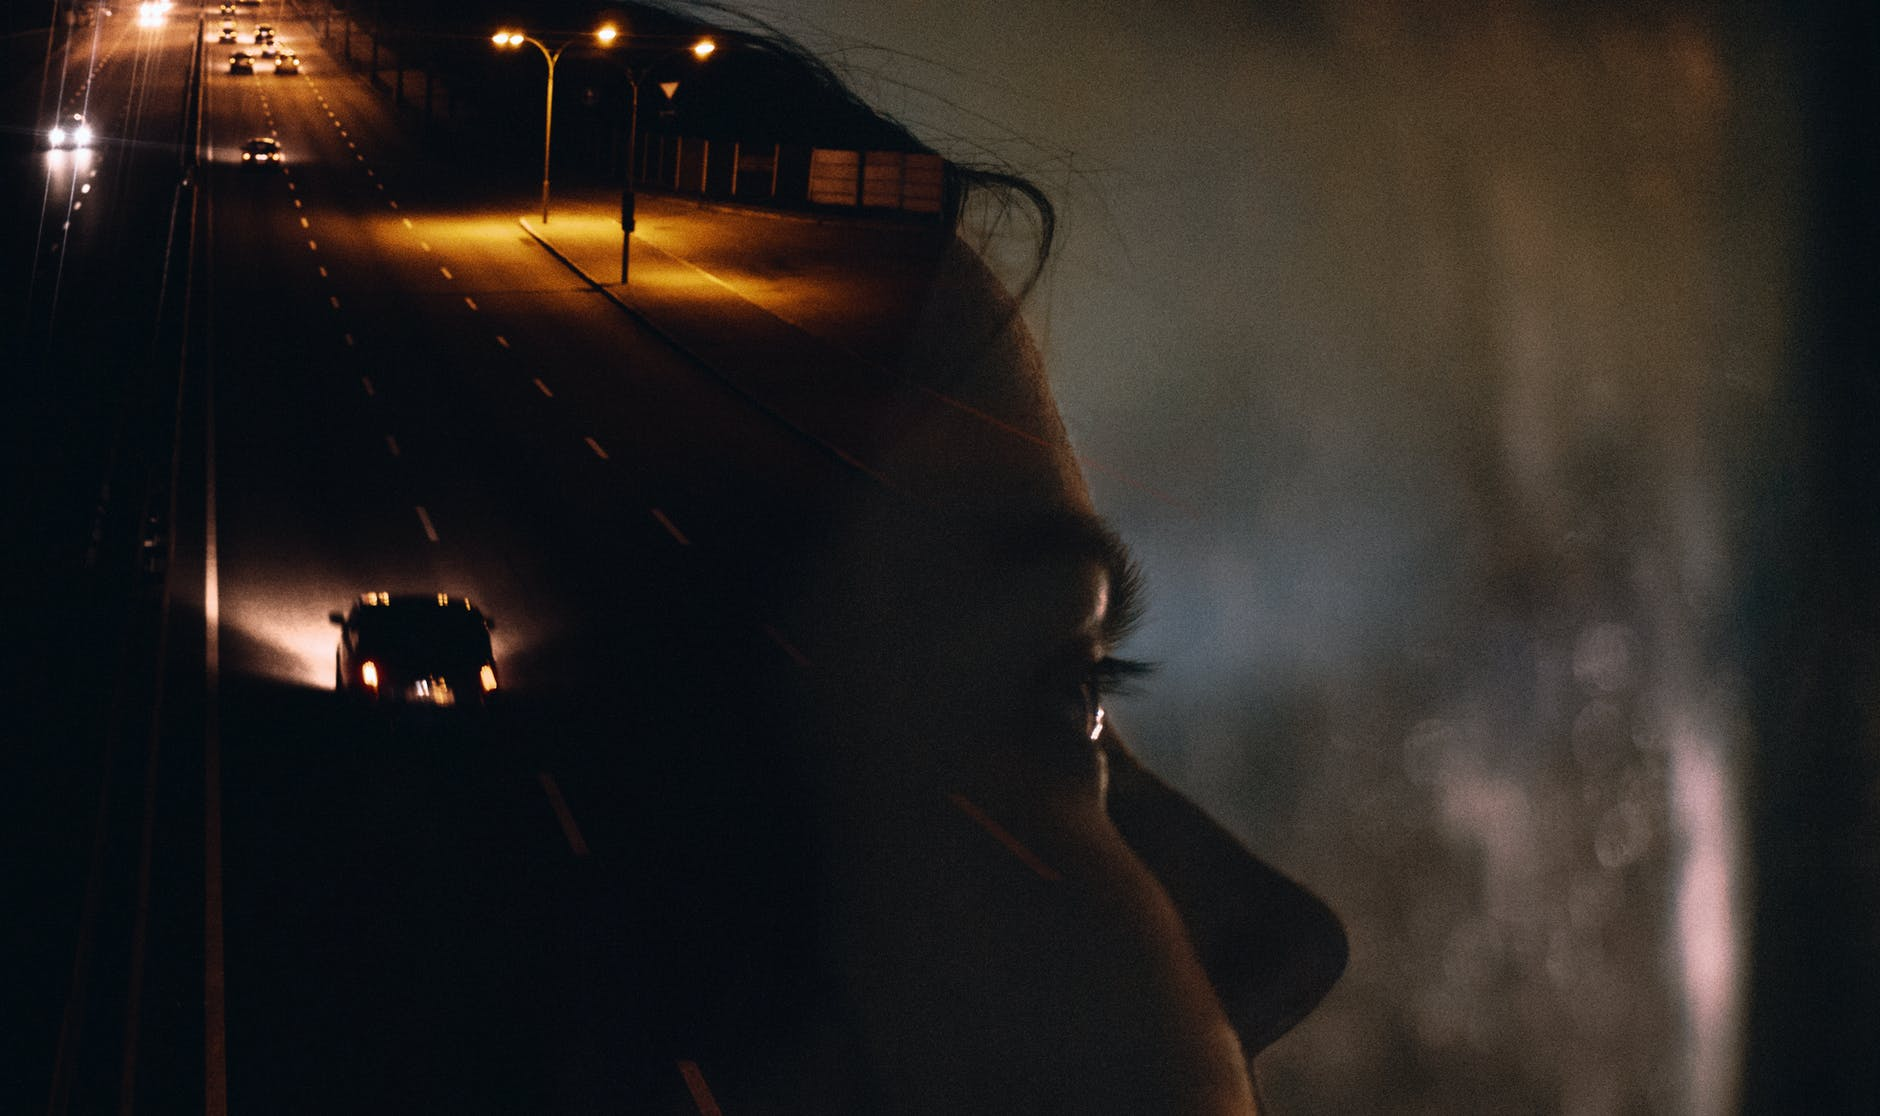 woman in car with road reflection on window at night